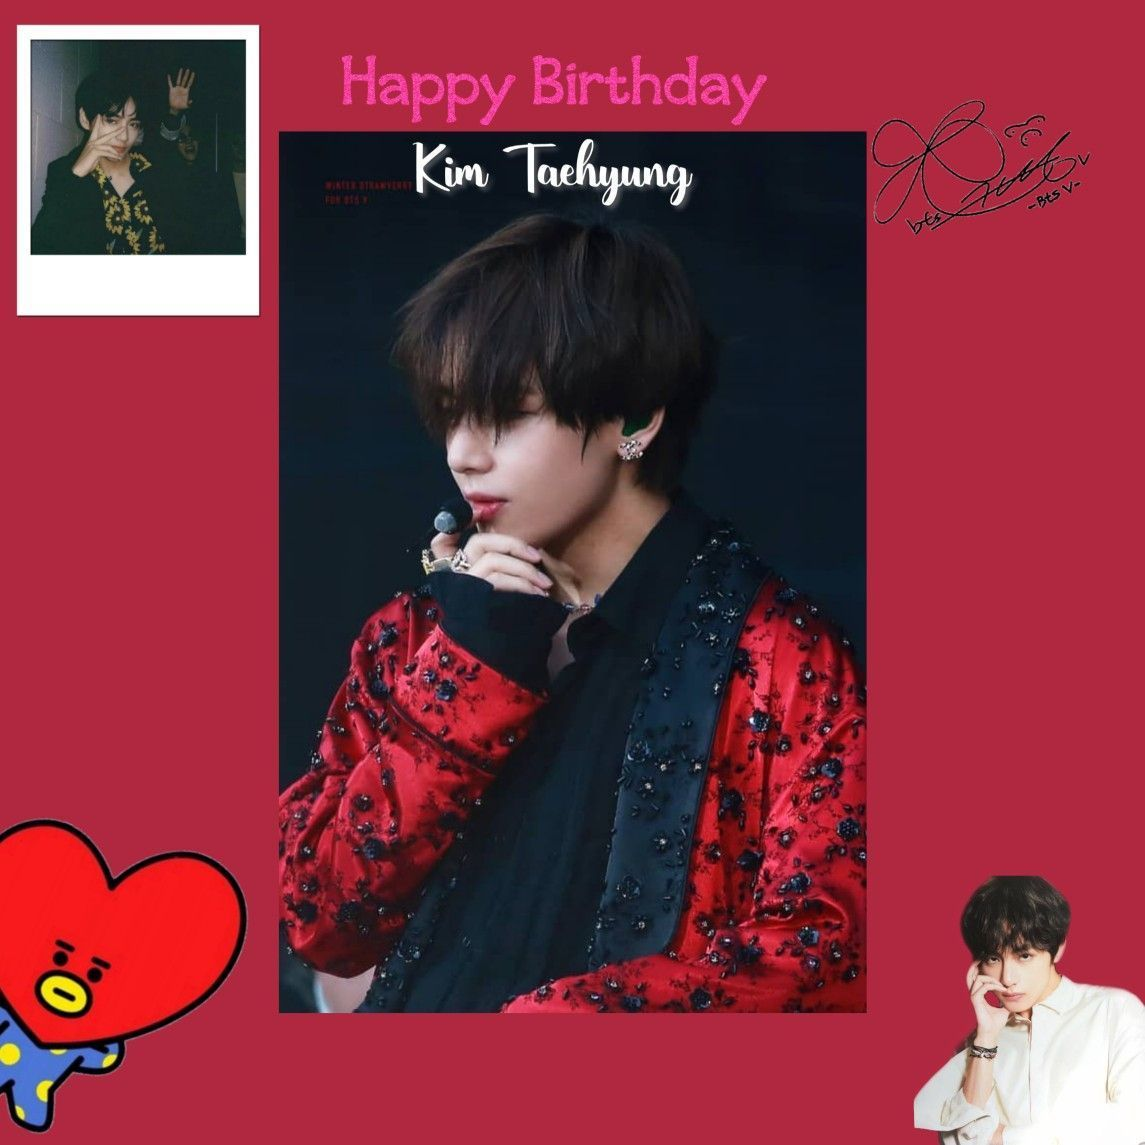 Edit buy kimadda (edit Kim taehyung birthday) #taehyungbirthday Edit buy kimadda (edit Kim taehyung birthday) #taehyungbirthday Edit buy kimadda (edit Kim taehyung birthday) #taehyungbirthday Edit buy kimadda (edit Kim taehyung birthday)